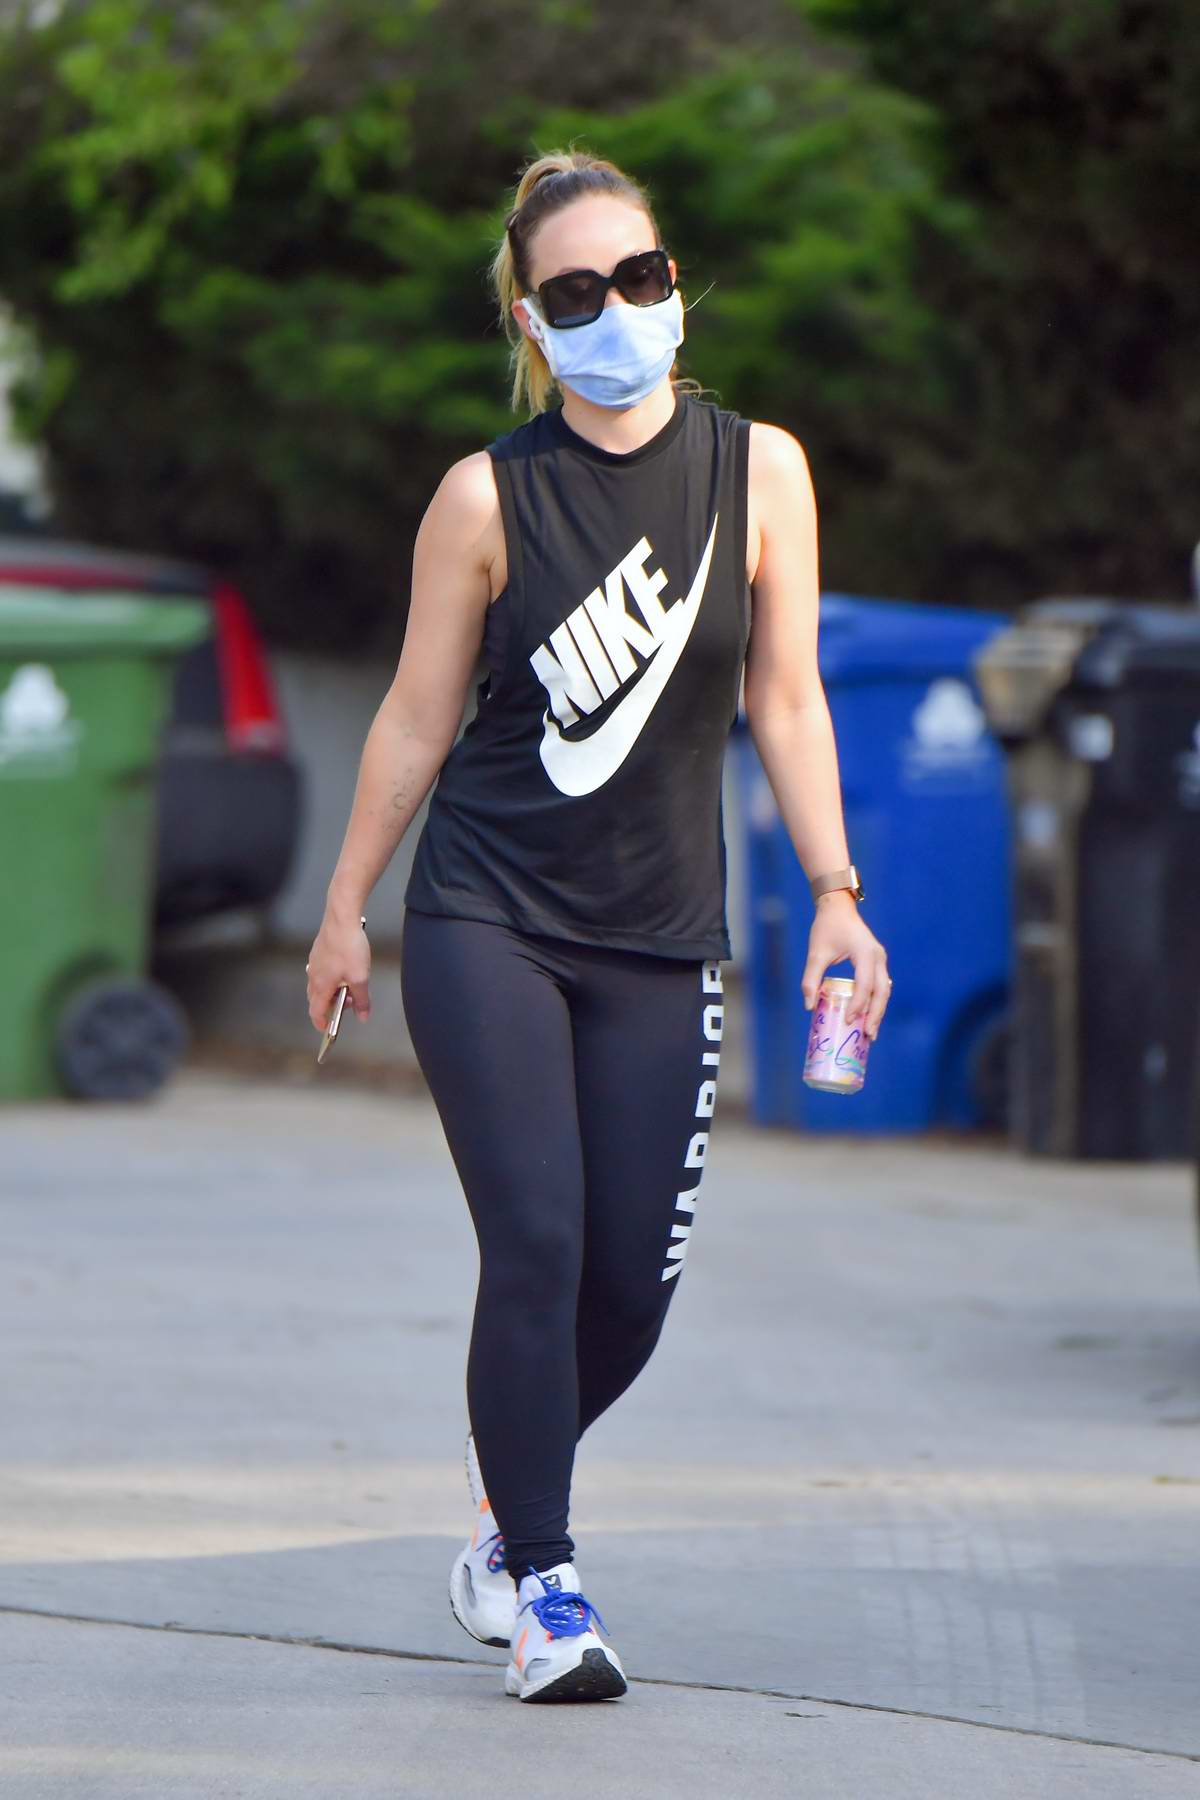 Olivia Wilde looks fit in a Nike top and leggings as she heads out on an evening hike in Los Angeles